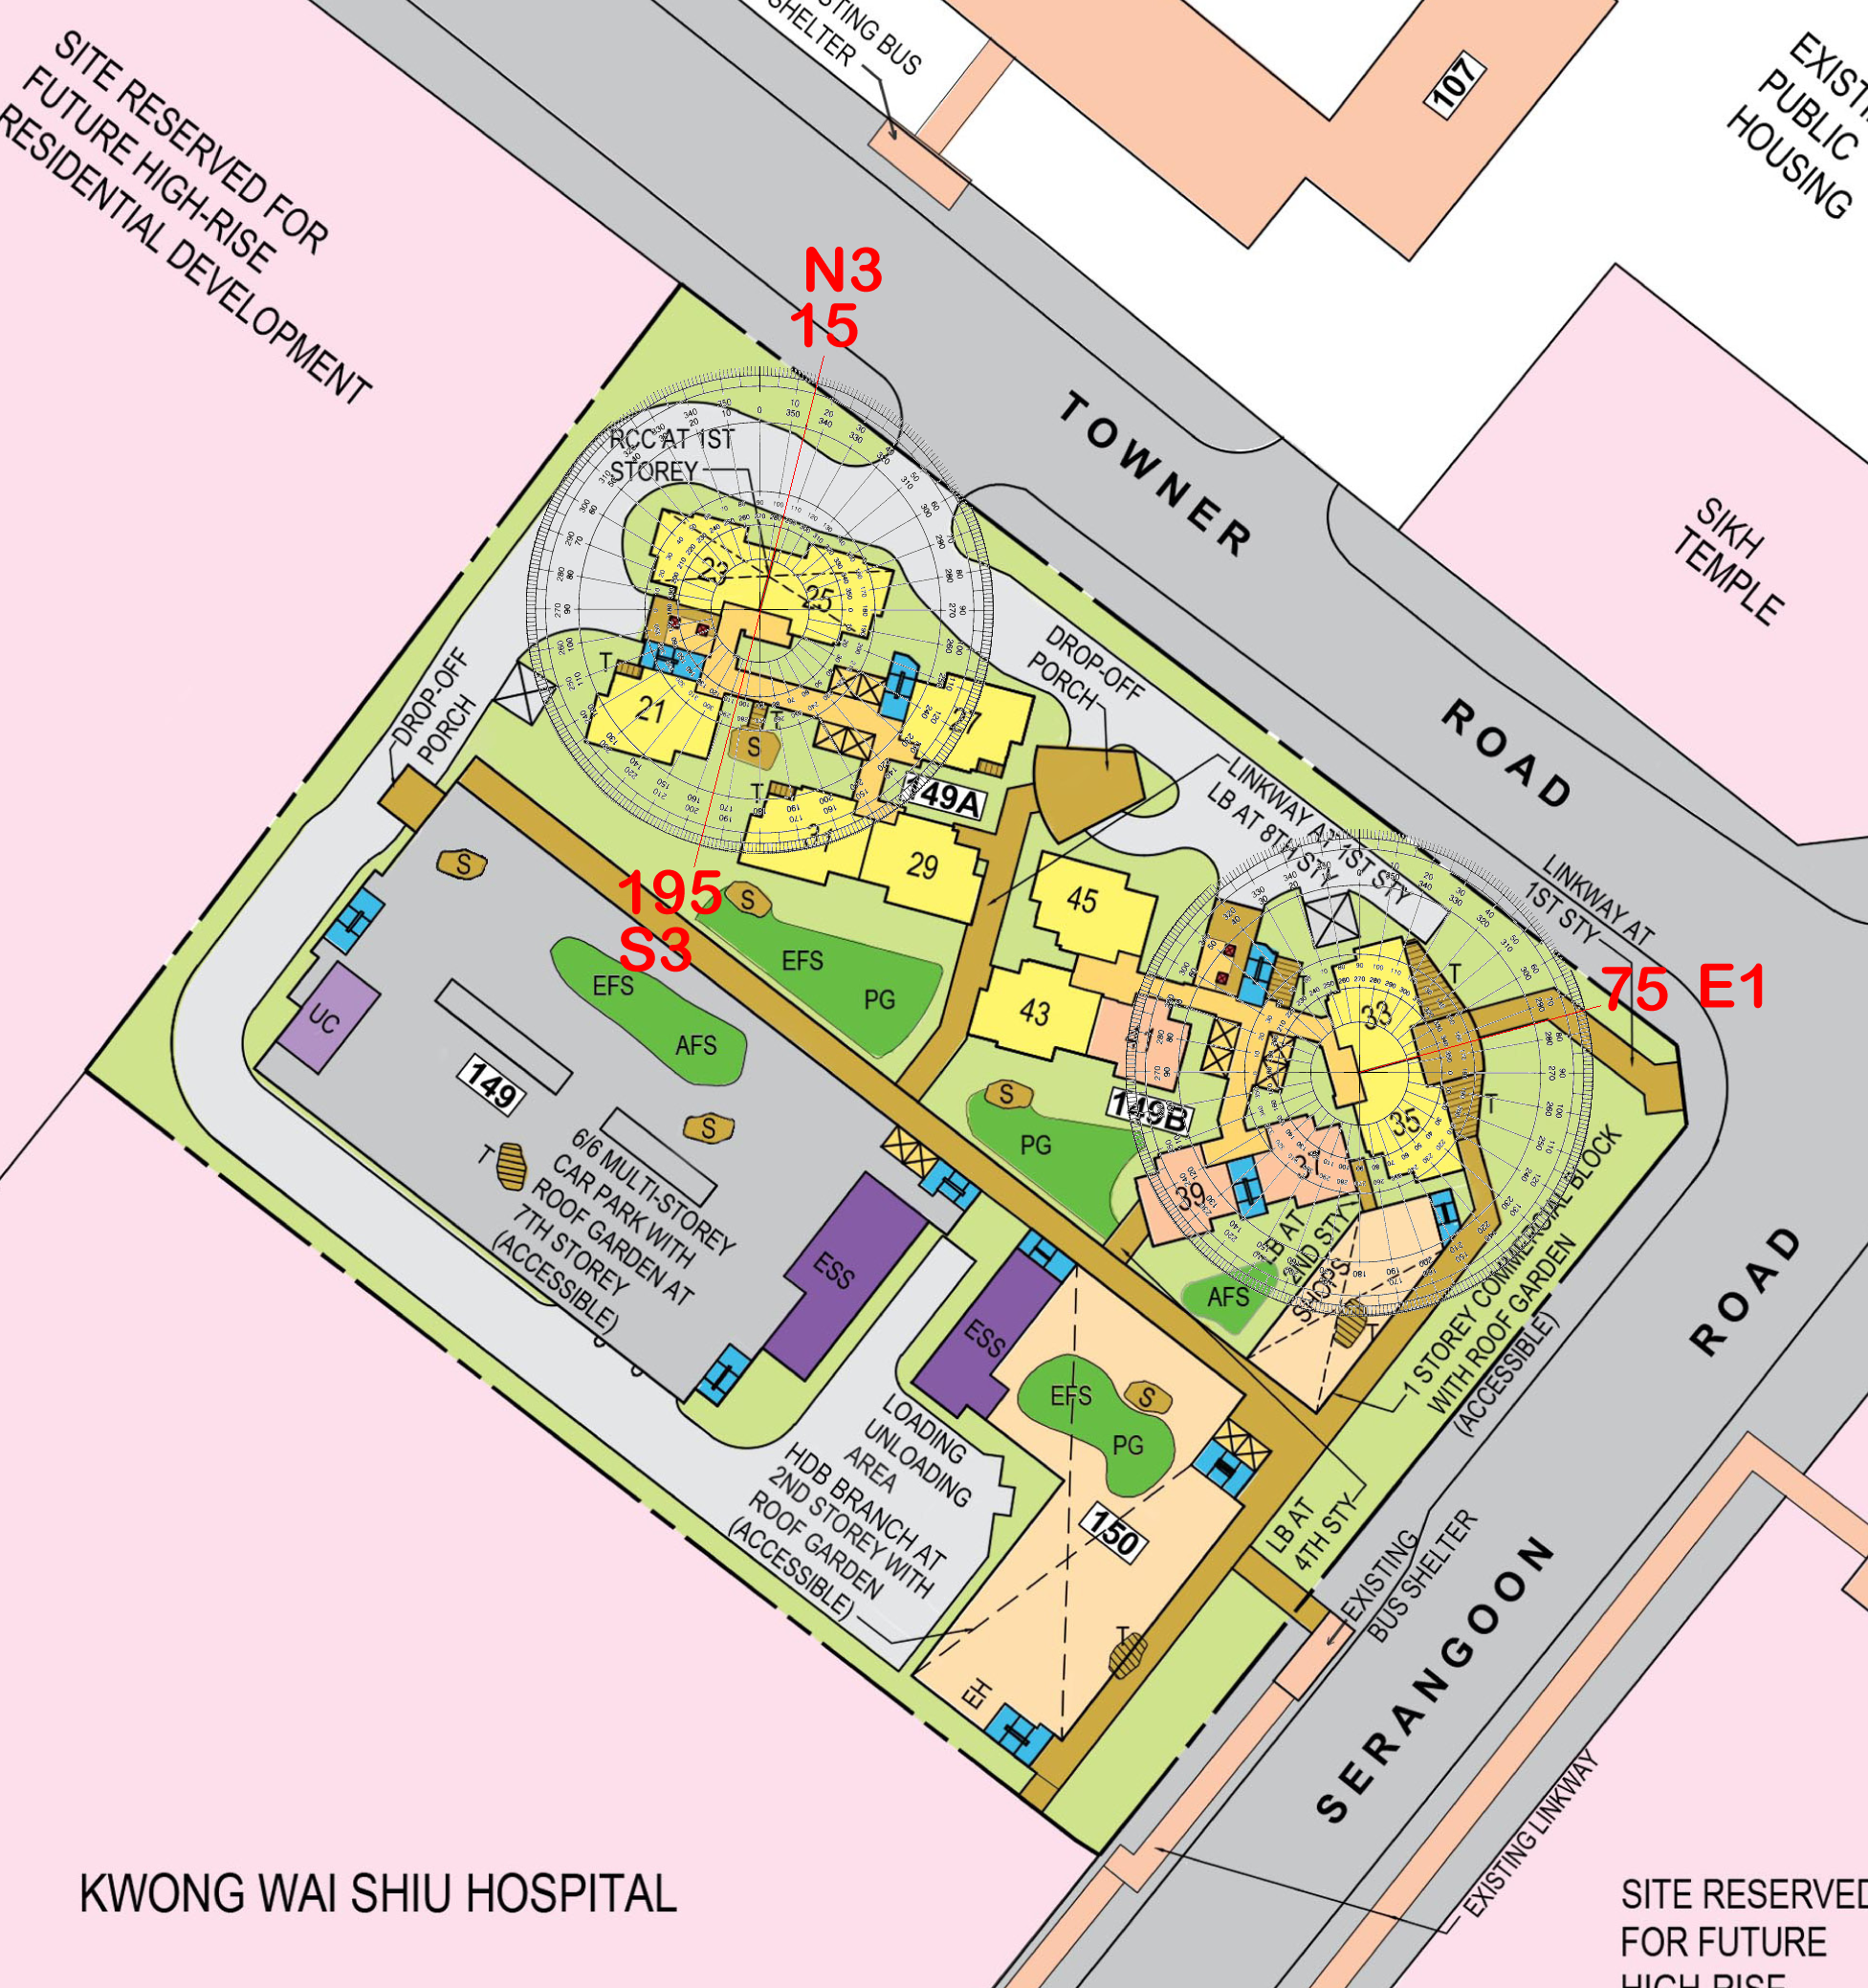 HDB Towner Crest BTO launched in February 2019 + a hospital? Where's